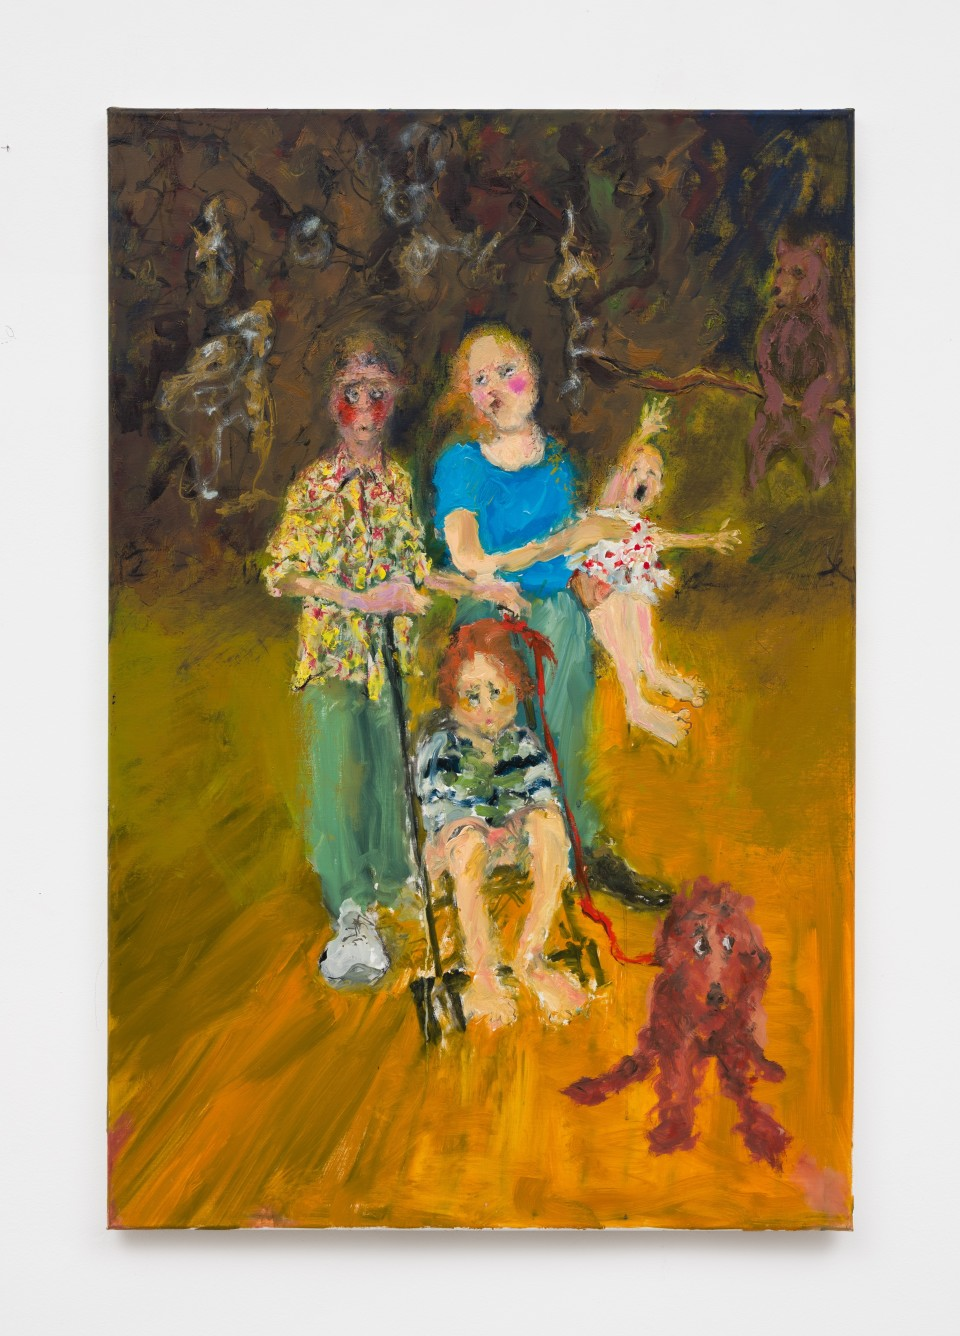 Image: Eva Beresin  Bear watch, 2021  signed, dated and titled verso  oil on canvas  47 1/4 x 31 1/2 inches (120 x 80 cm)